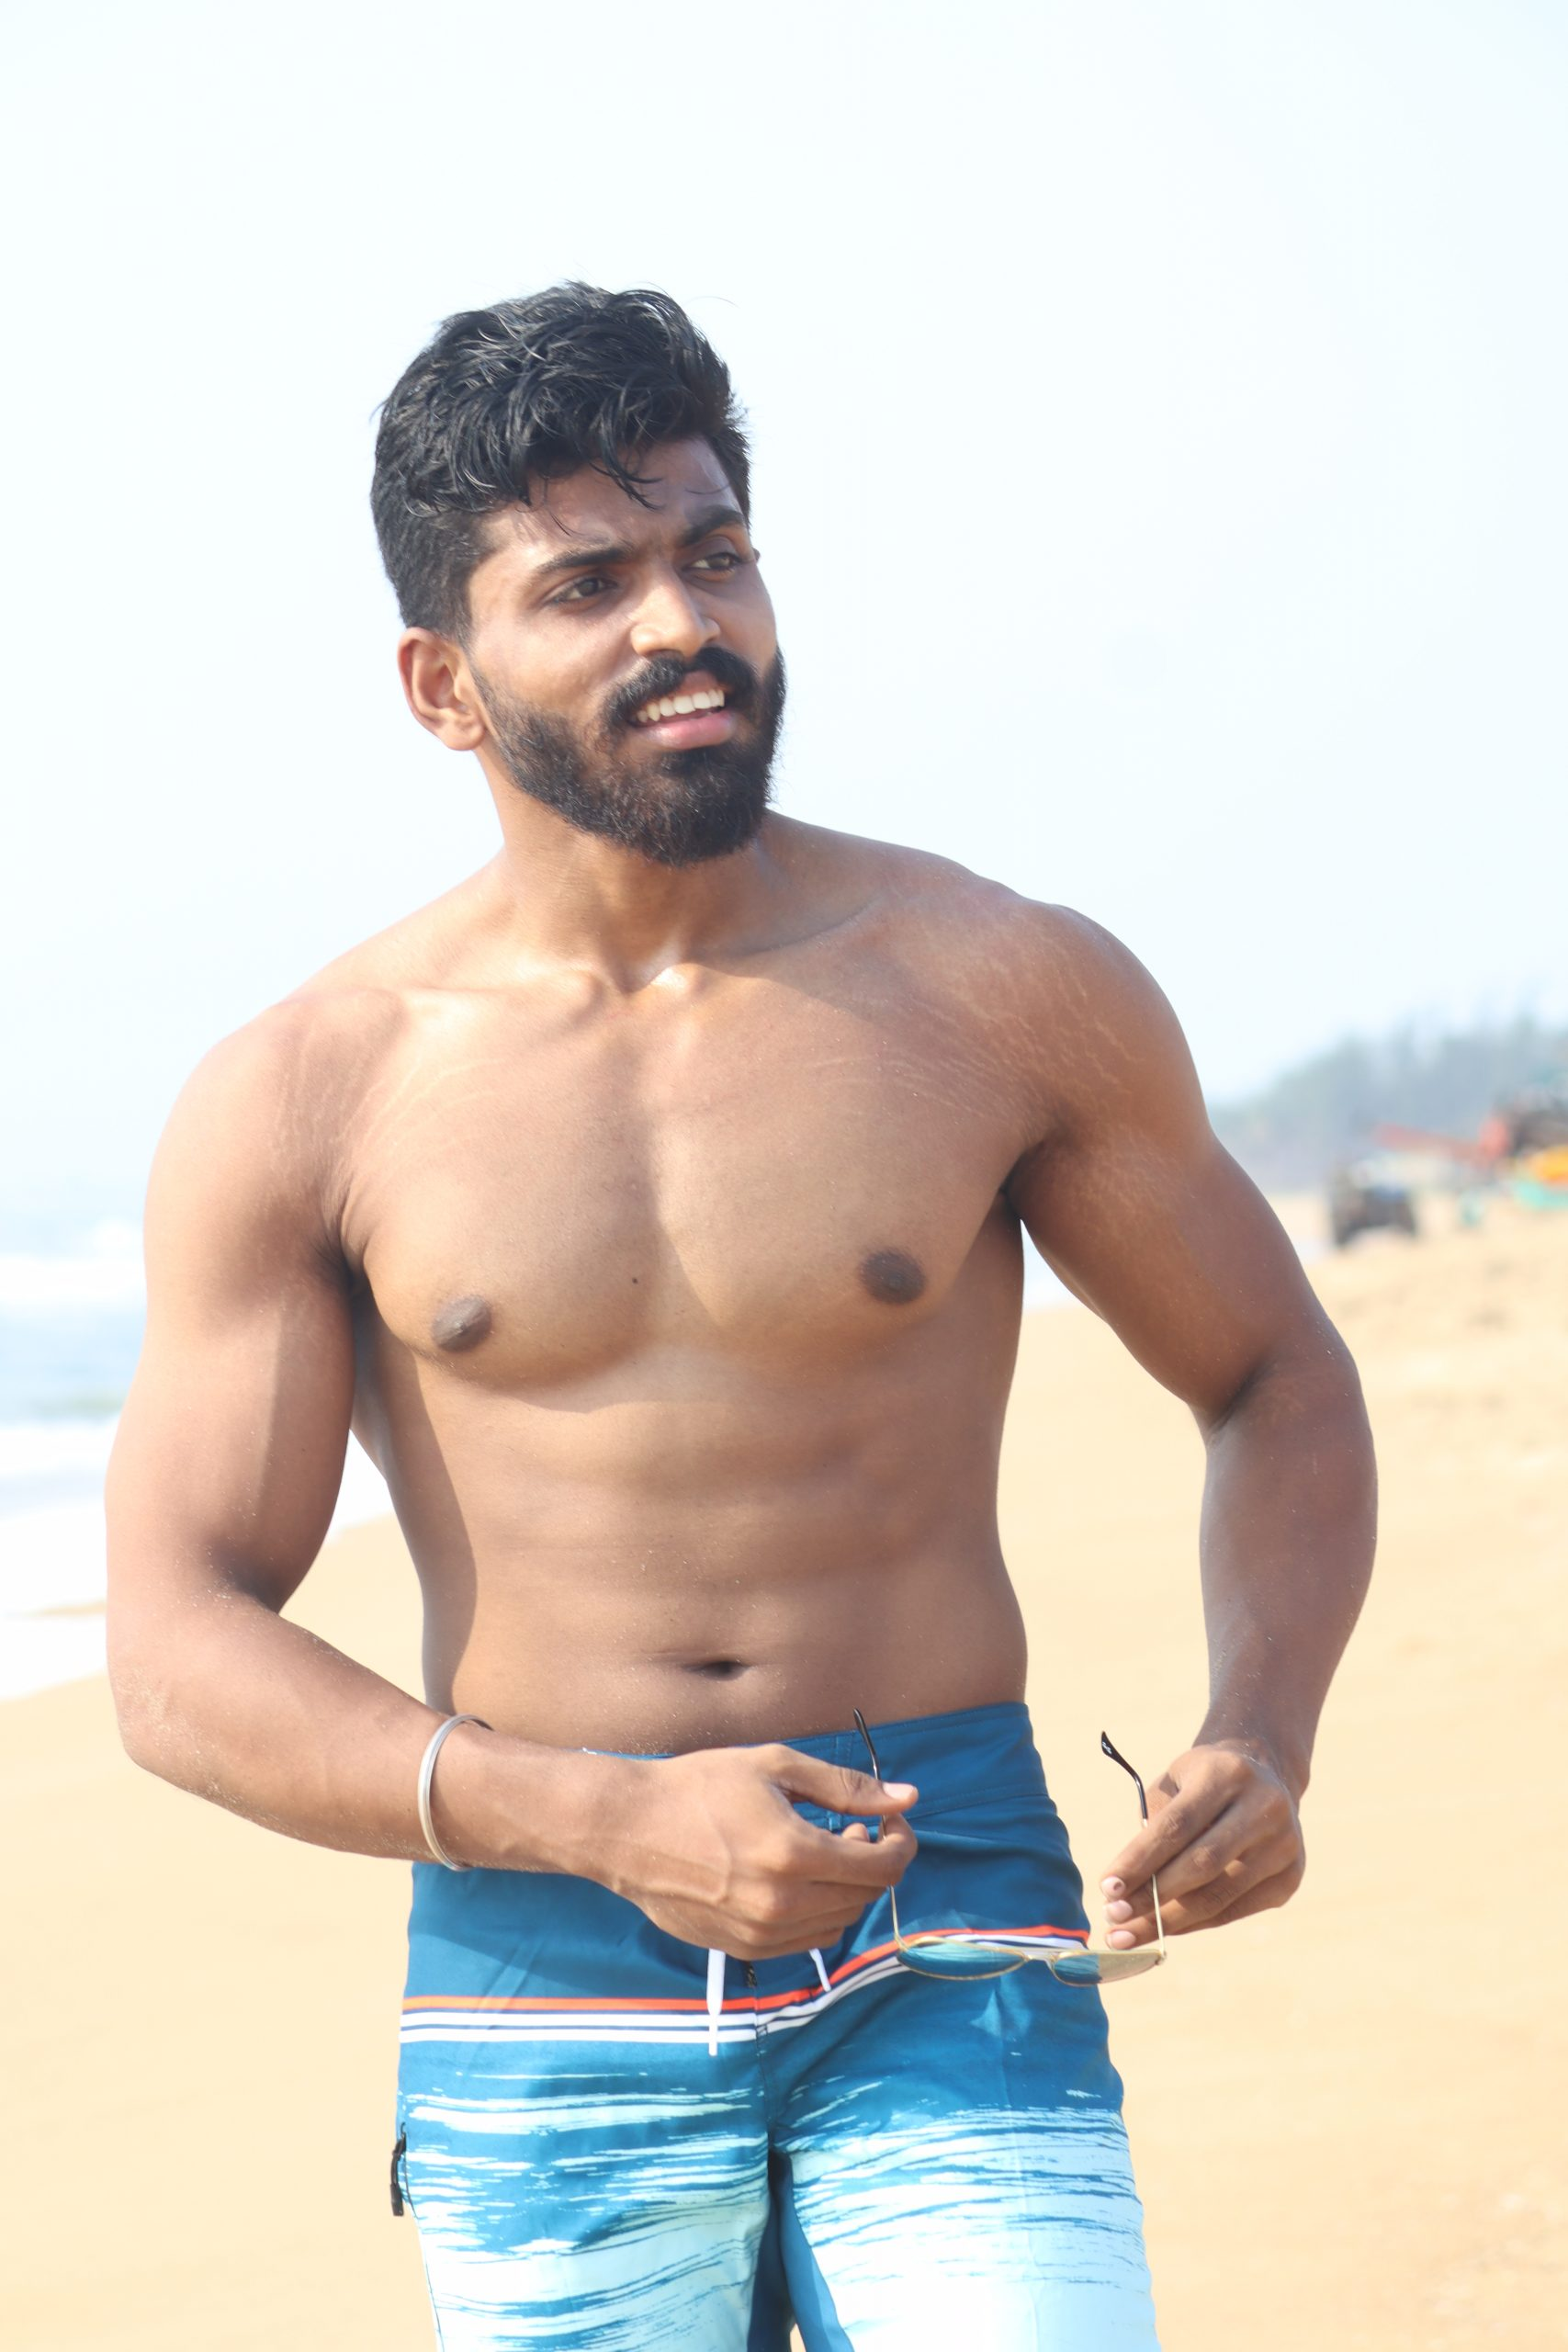 Boy showing his arms and muscles on the beach